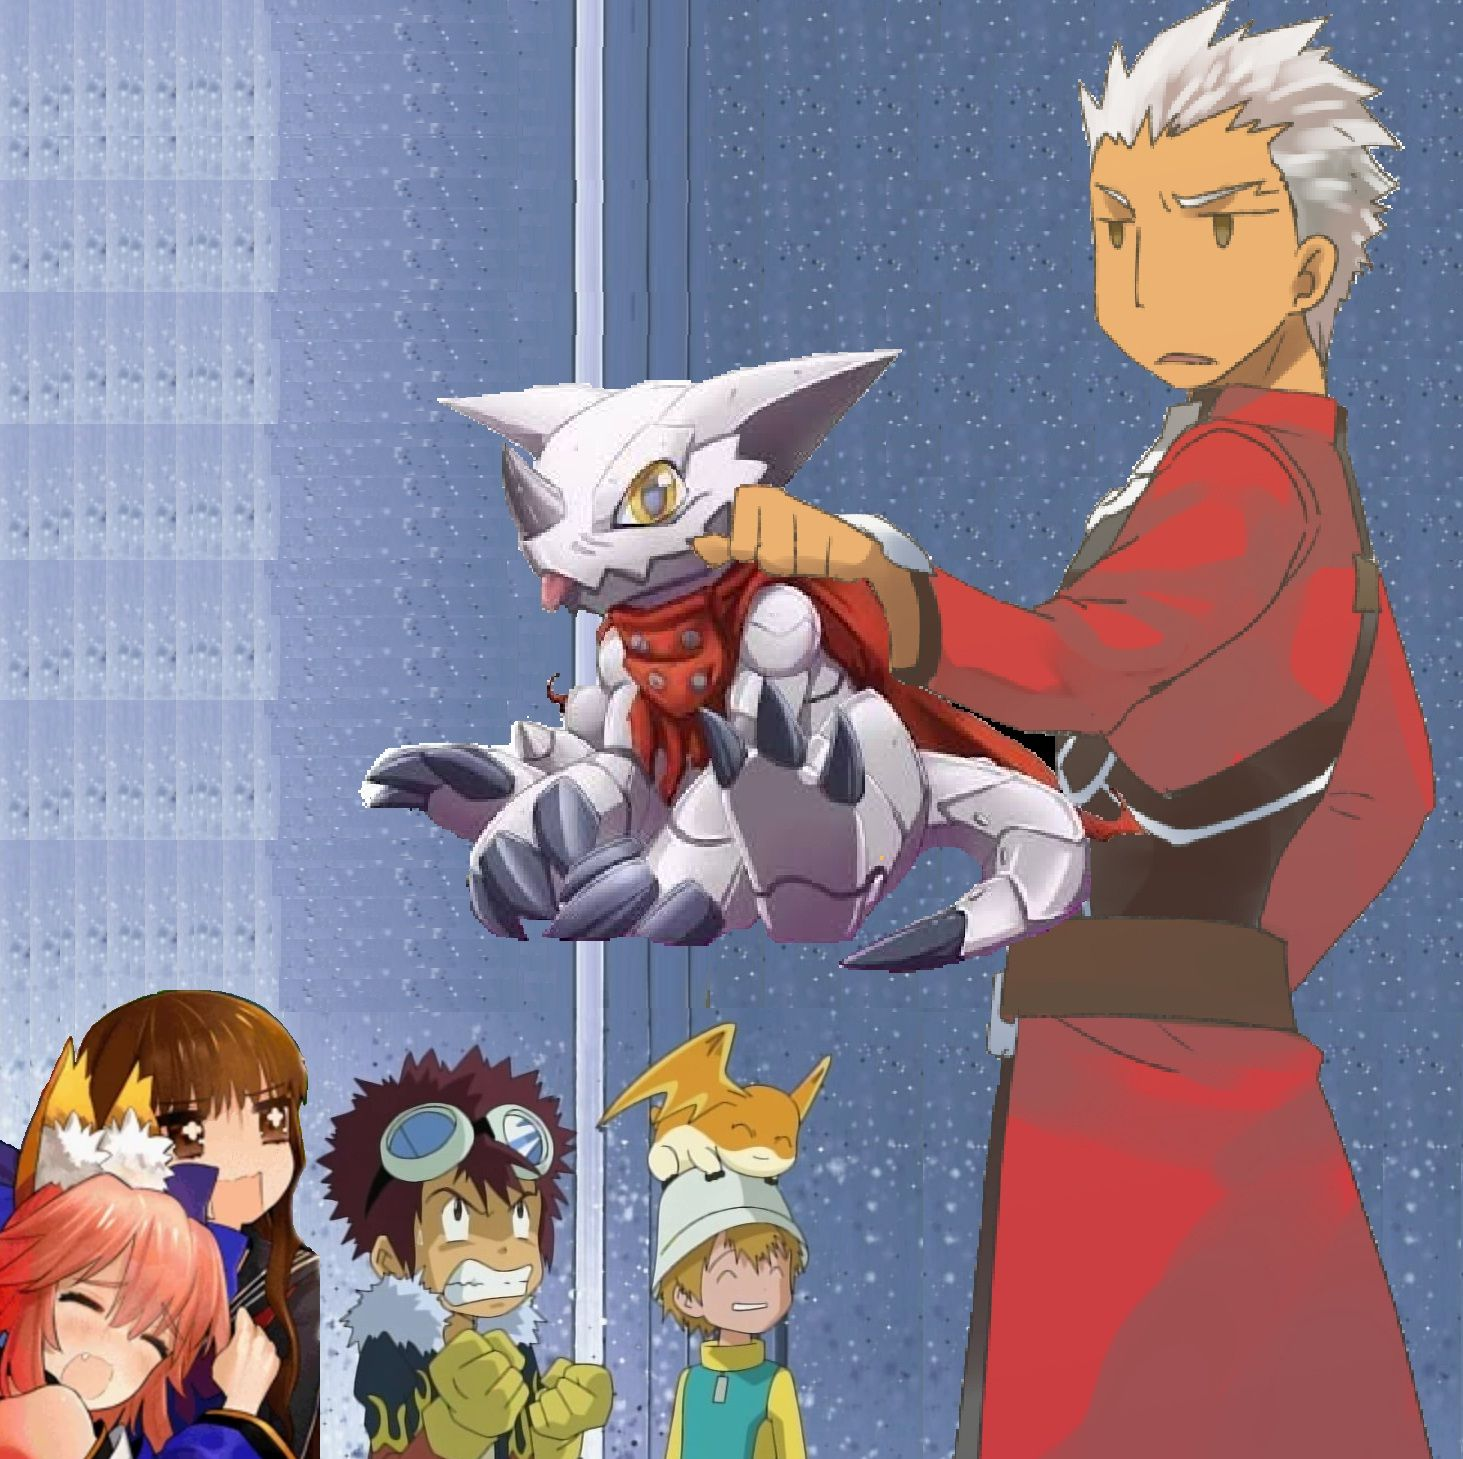 Here Come A New Ally Fate Stay Night Crossover Anime Crossover Digimon The last airbender, avengers, chronicles of narnia, daredevil, fate/stay night, fate/zero, fate/apocrypha, fate/grand order, flash, free, harry potter, jessica jones, legacies, maze runner. fate stay night crossover